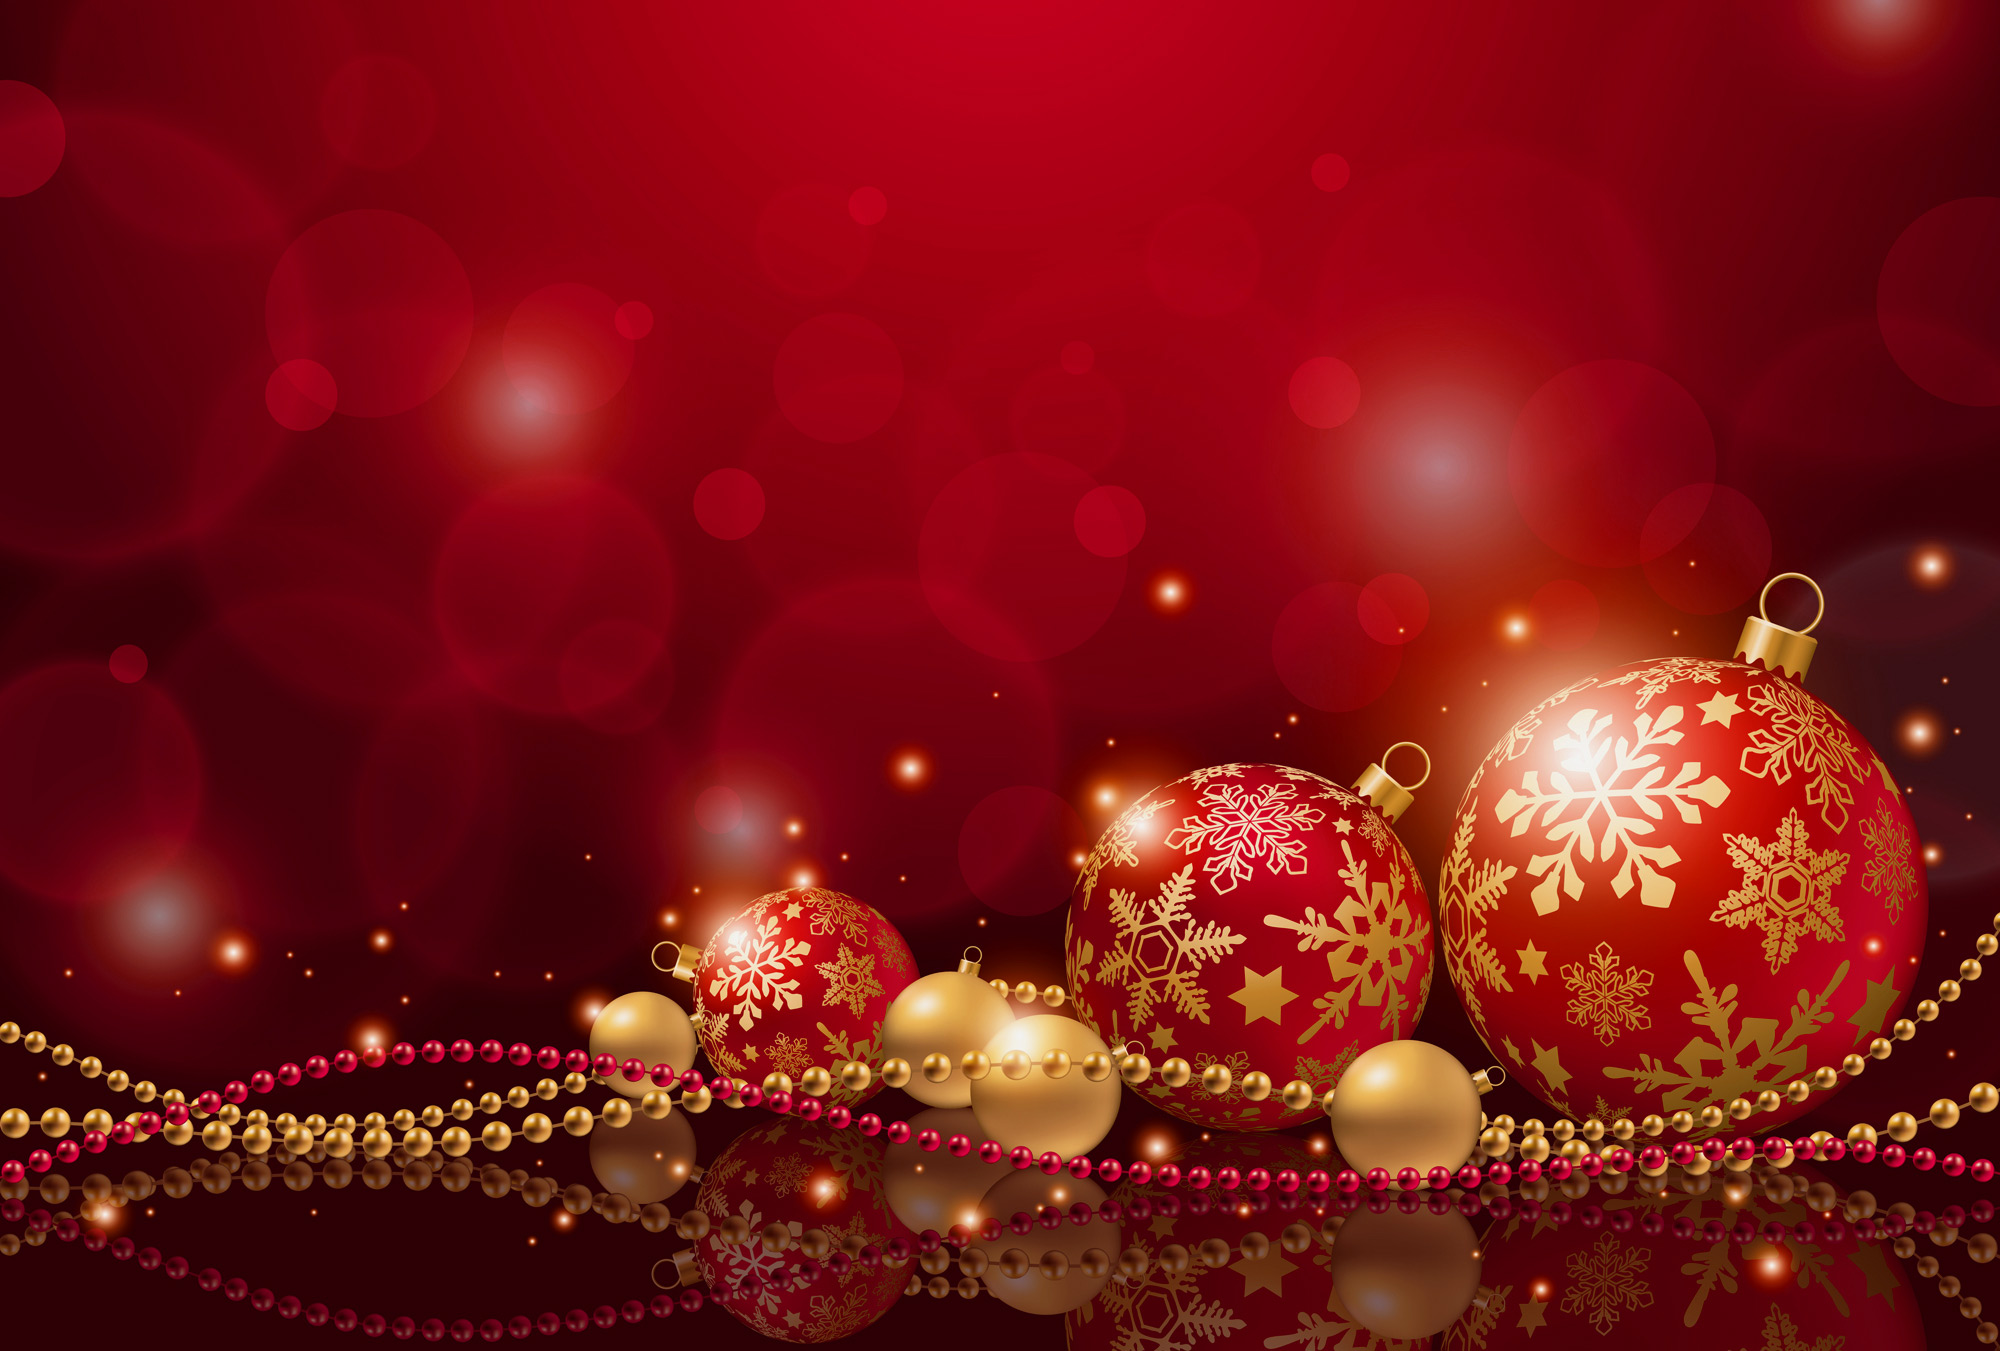 Snow Falling Wallpaper Hd Christmas Backgrounds Group 74